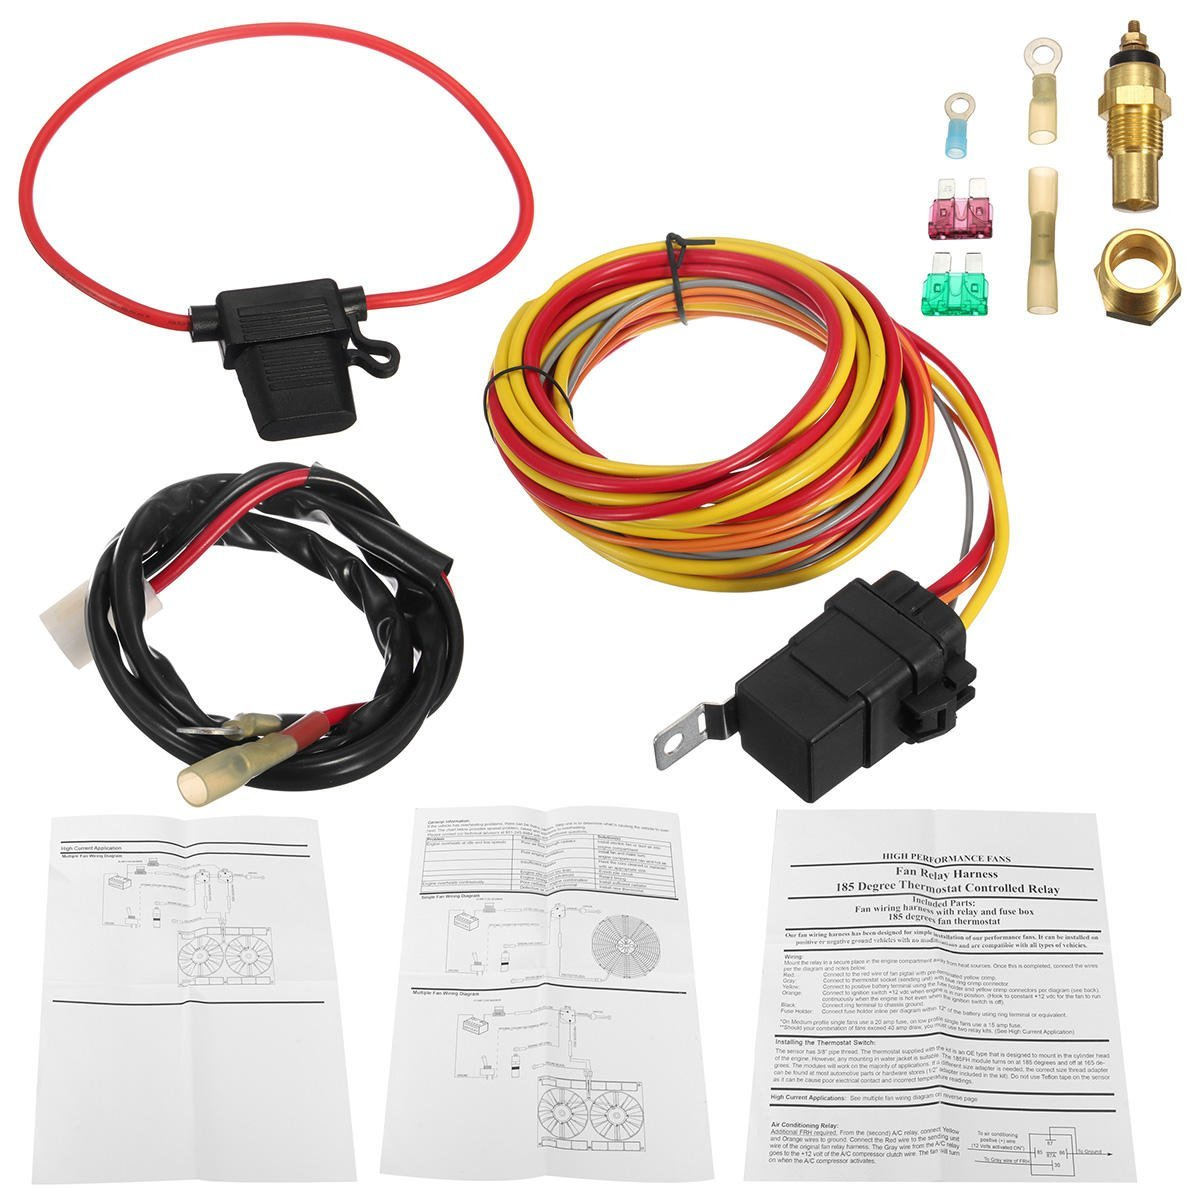 Dual Electric Fan 40 Relay Wiring Harness Thermostat Sensor ... on h and m horse, h and m backpack, h and m tube, h and m tower, h and m boots, h and m furniture, h and m wetsuit, h and m tumblr, h and m bag, h and m vest,